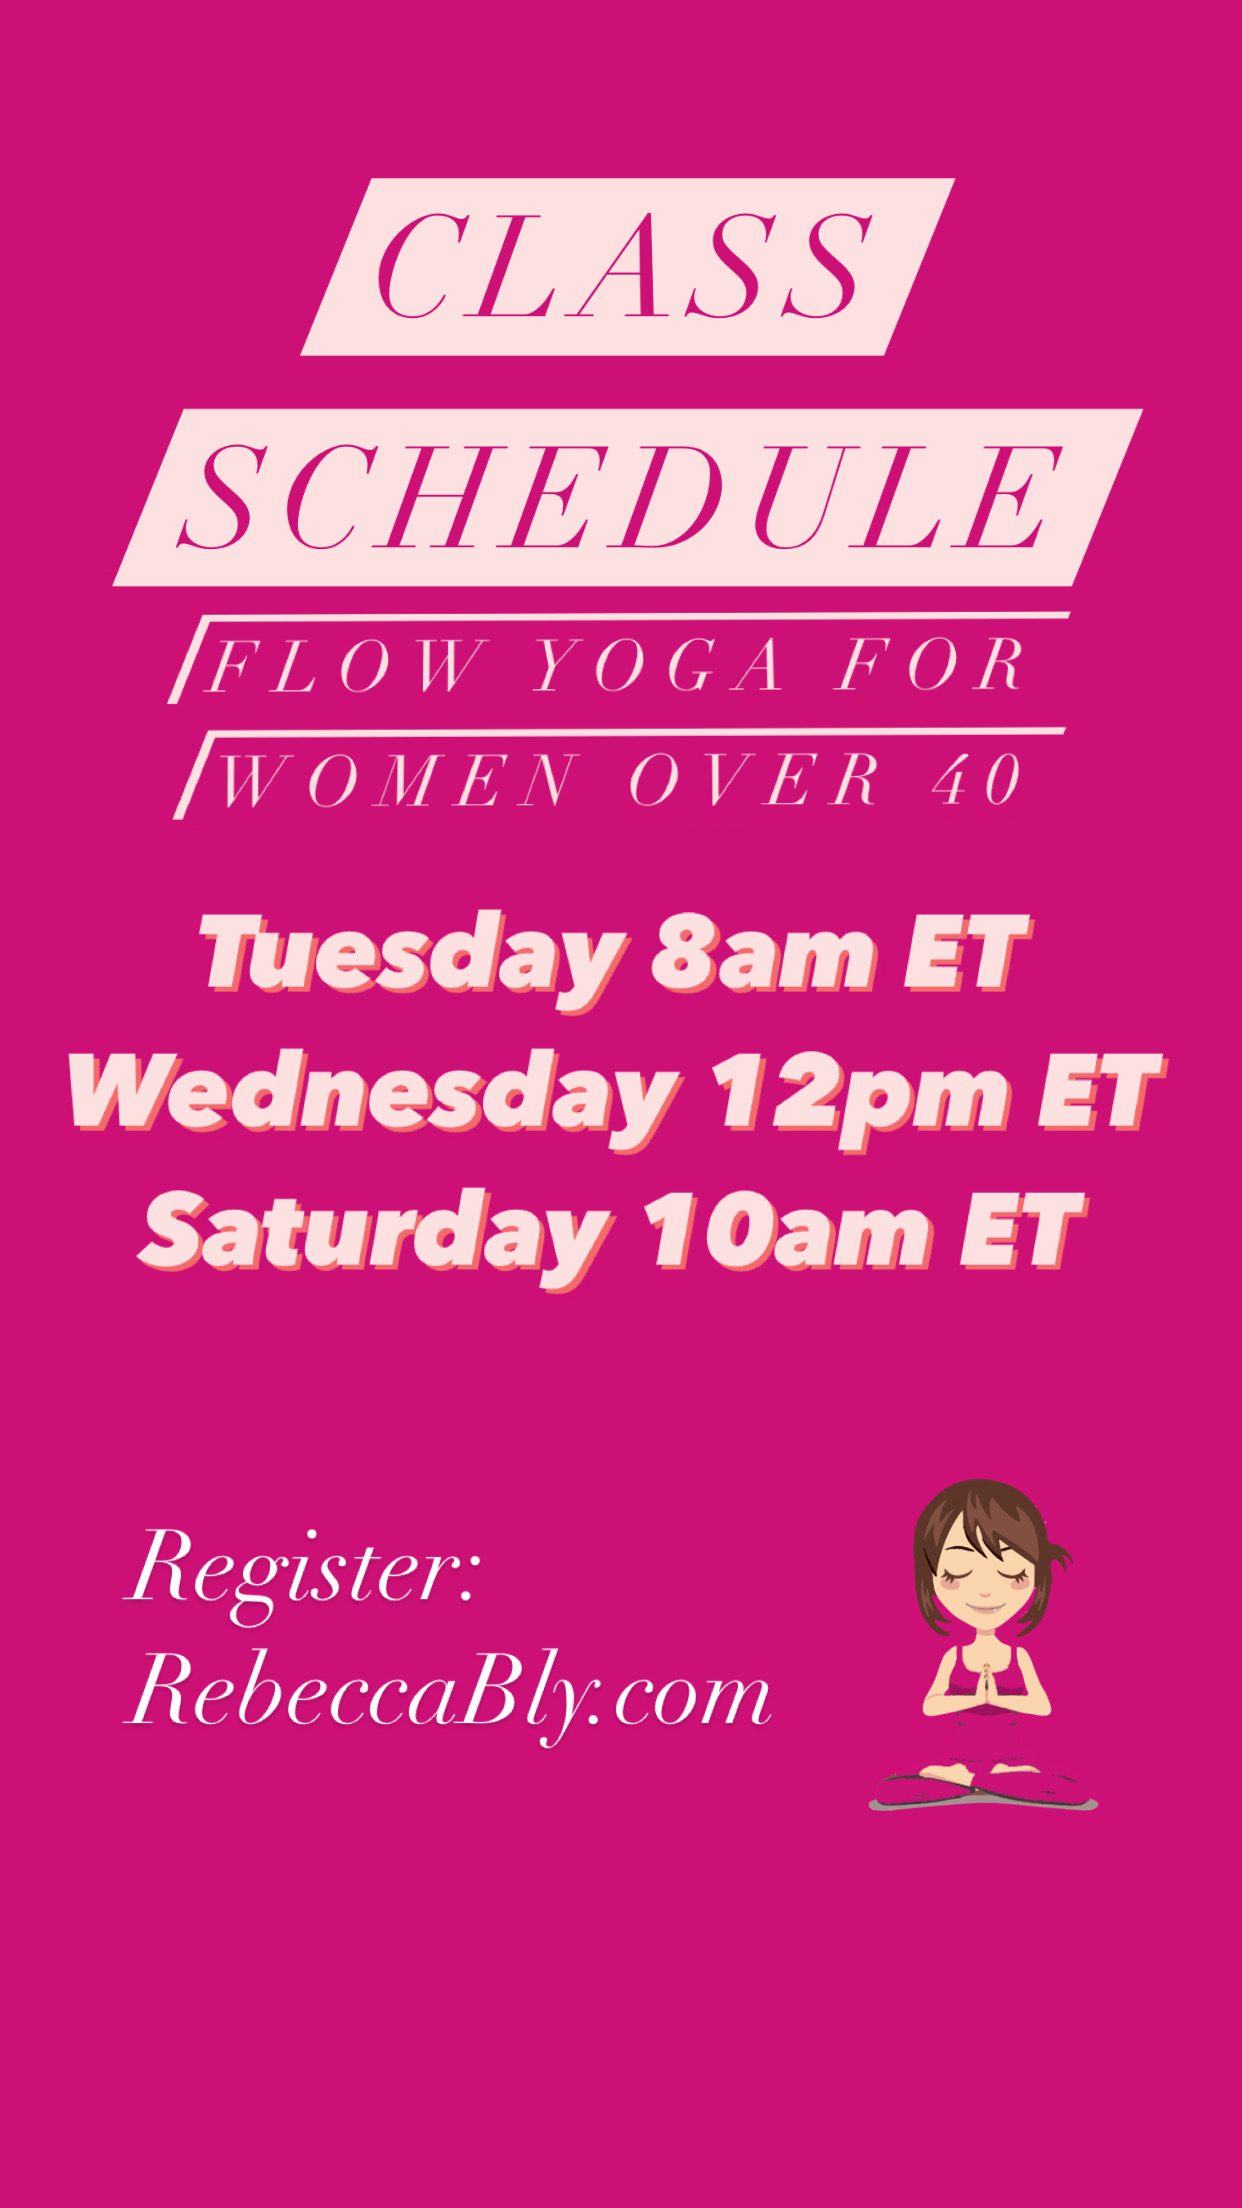 Rebecca Bly Class Schedule rebeccably.com for women over 40